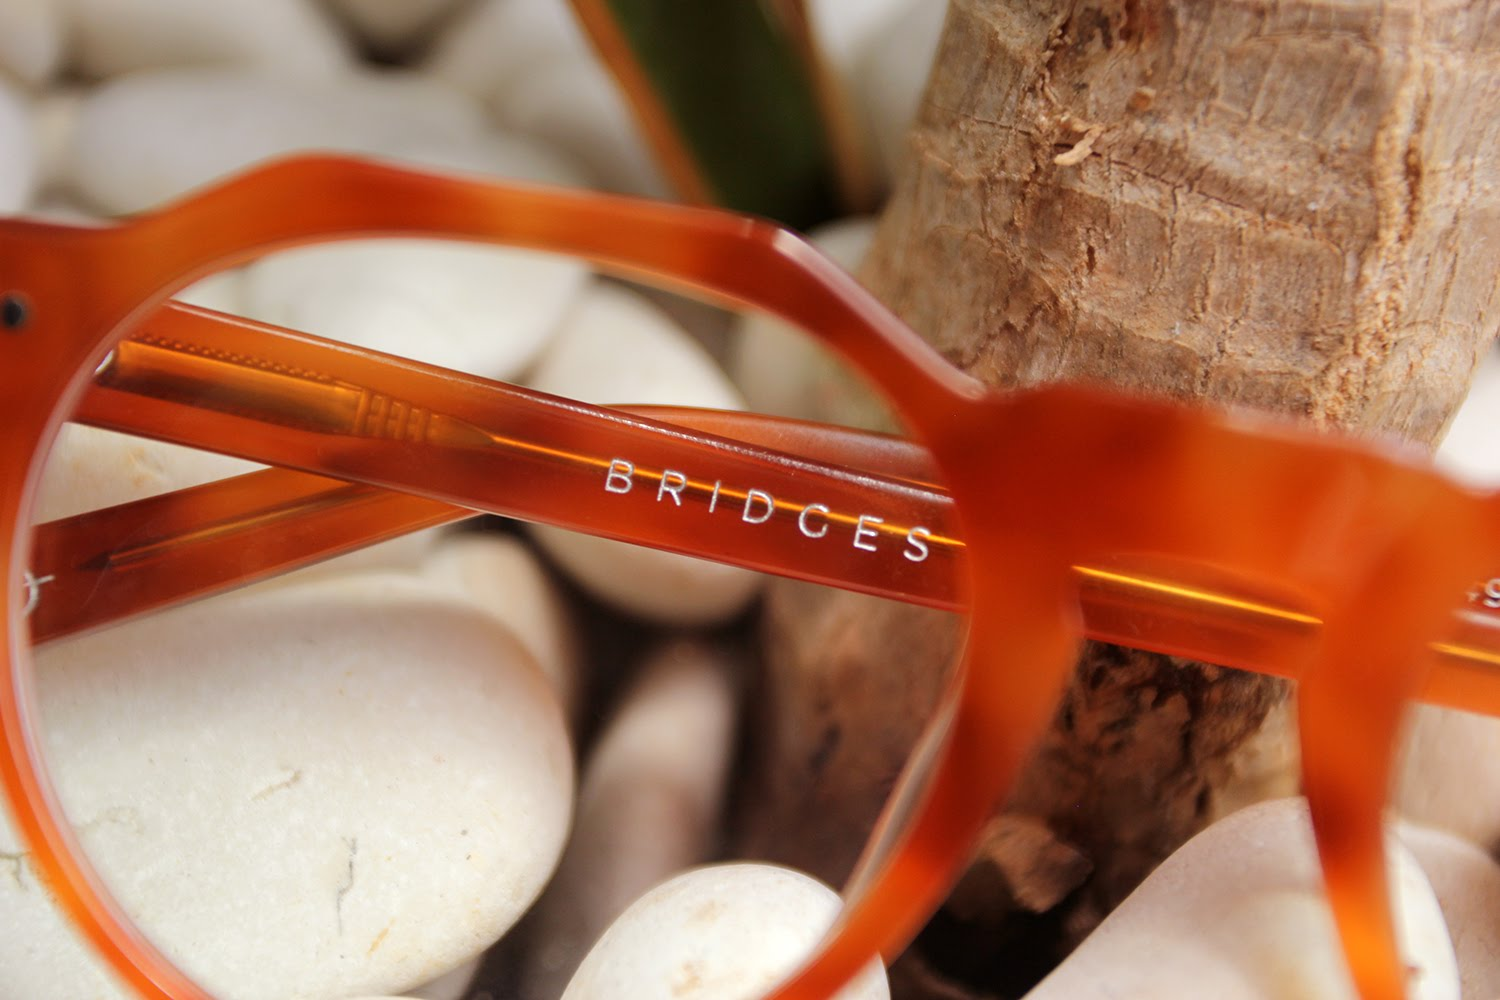 Bridges Eyewear Charles 3